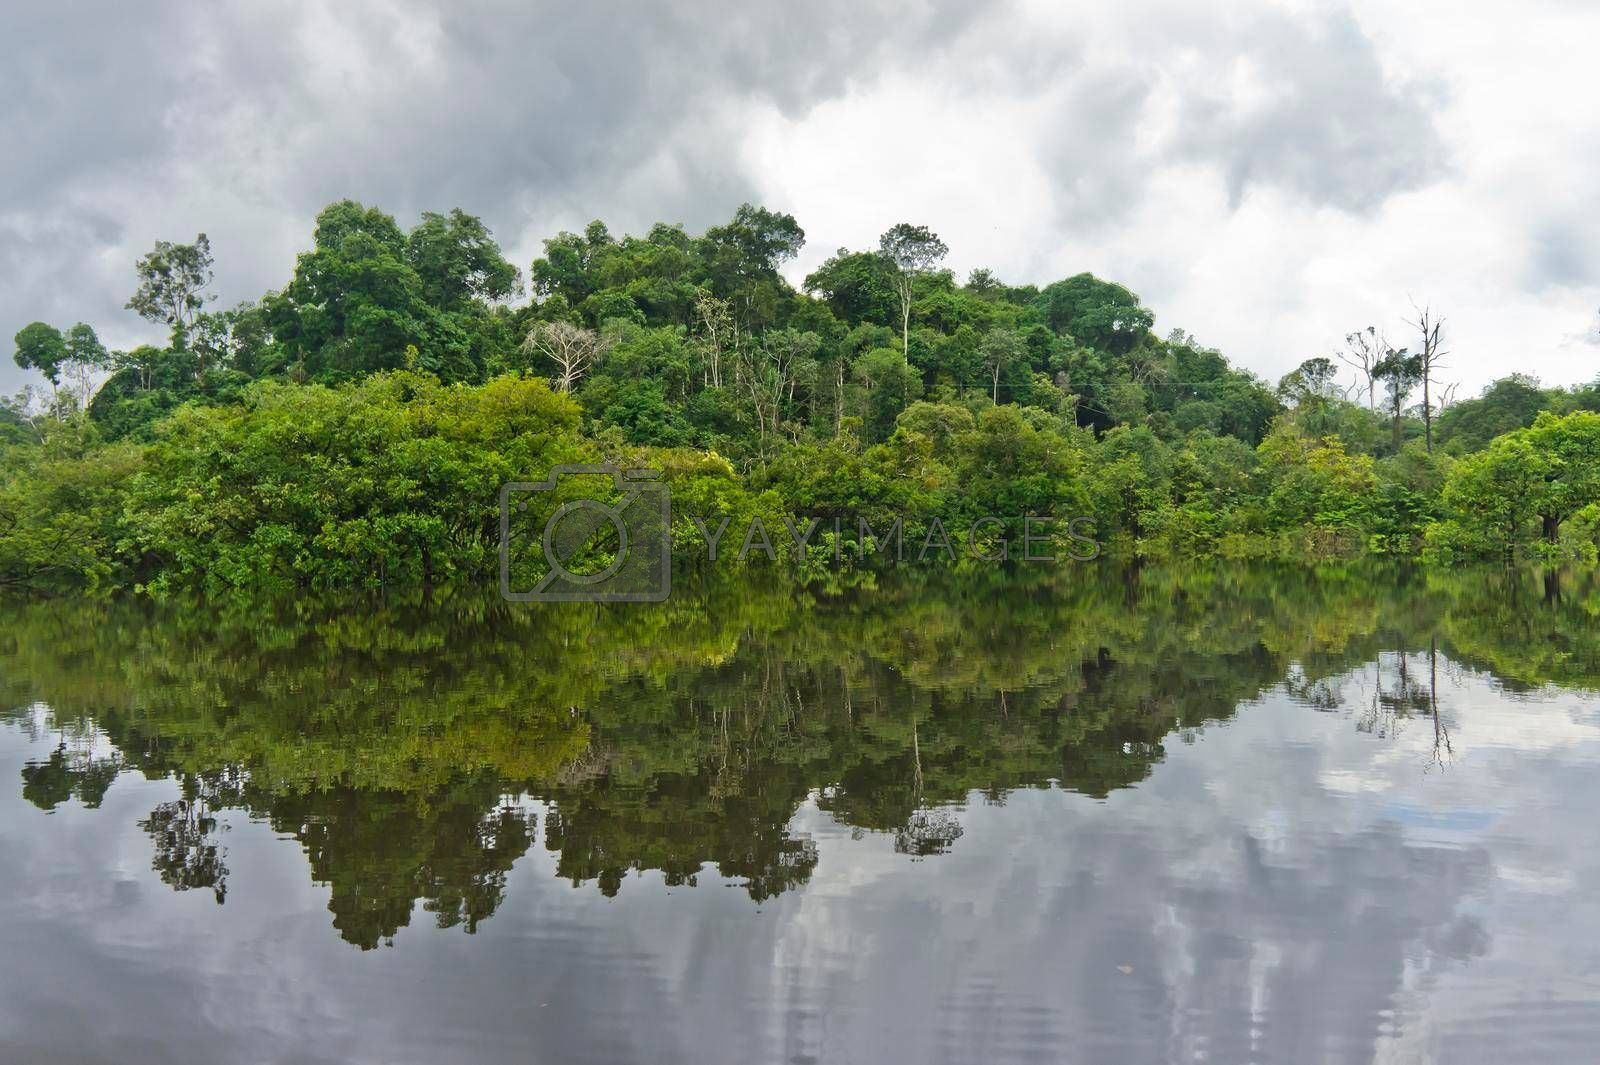 Royalty free image of Amazon river reflection, Brazil, South America by giannakisphoto